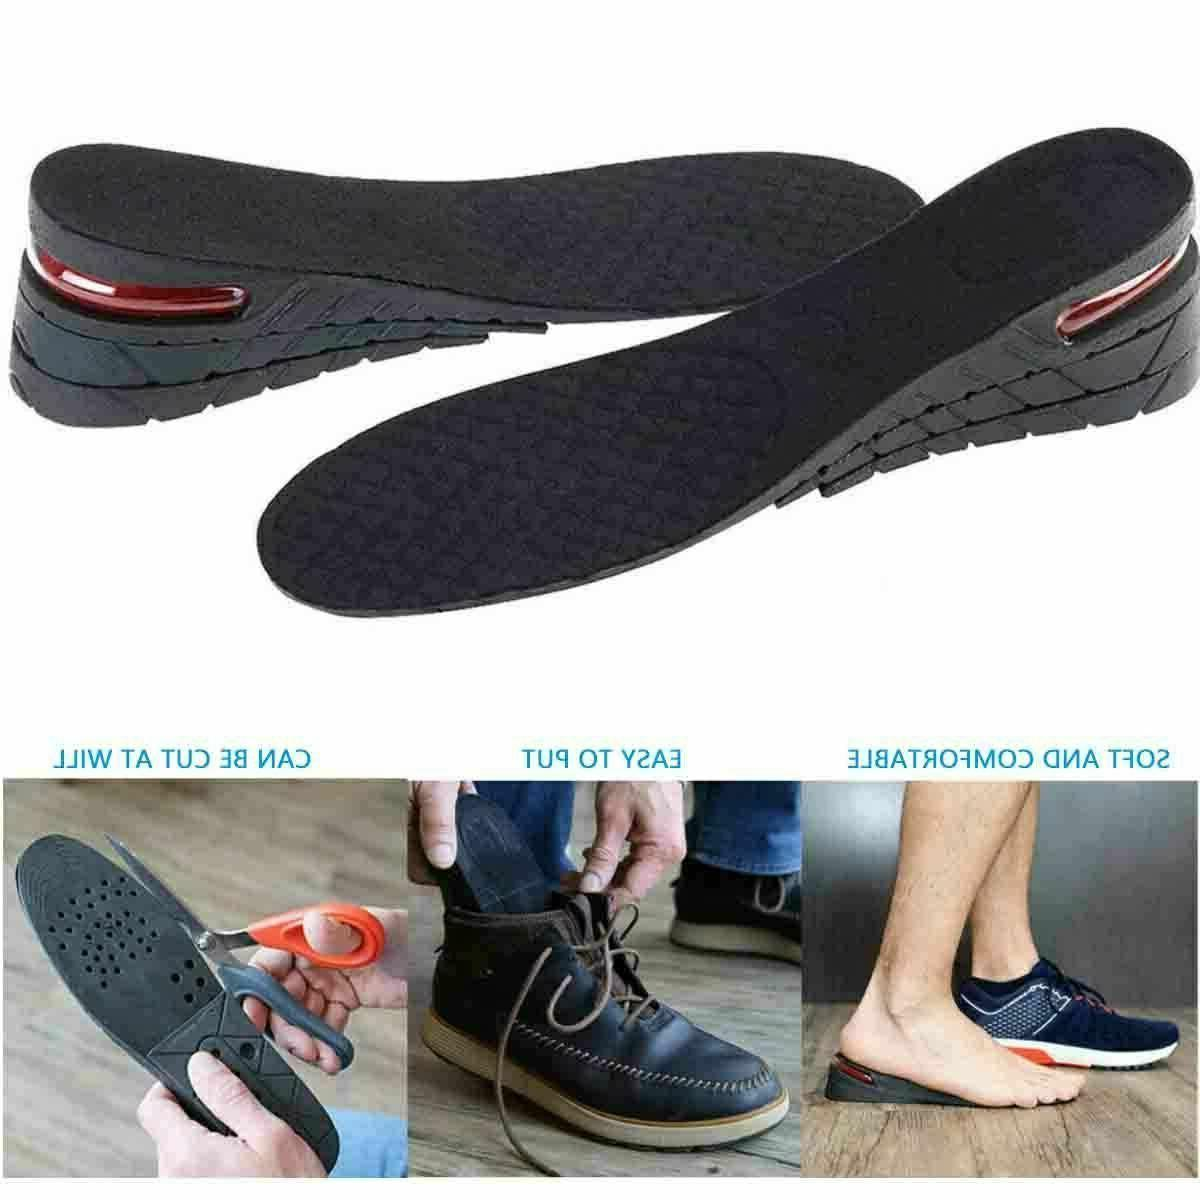 7cm Insole Air insert Increase Height 3-Layer